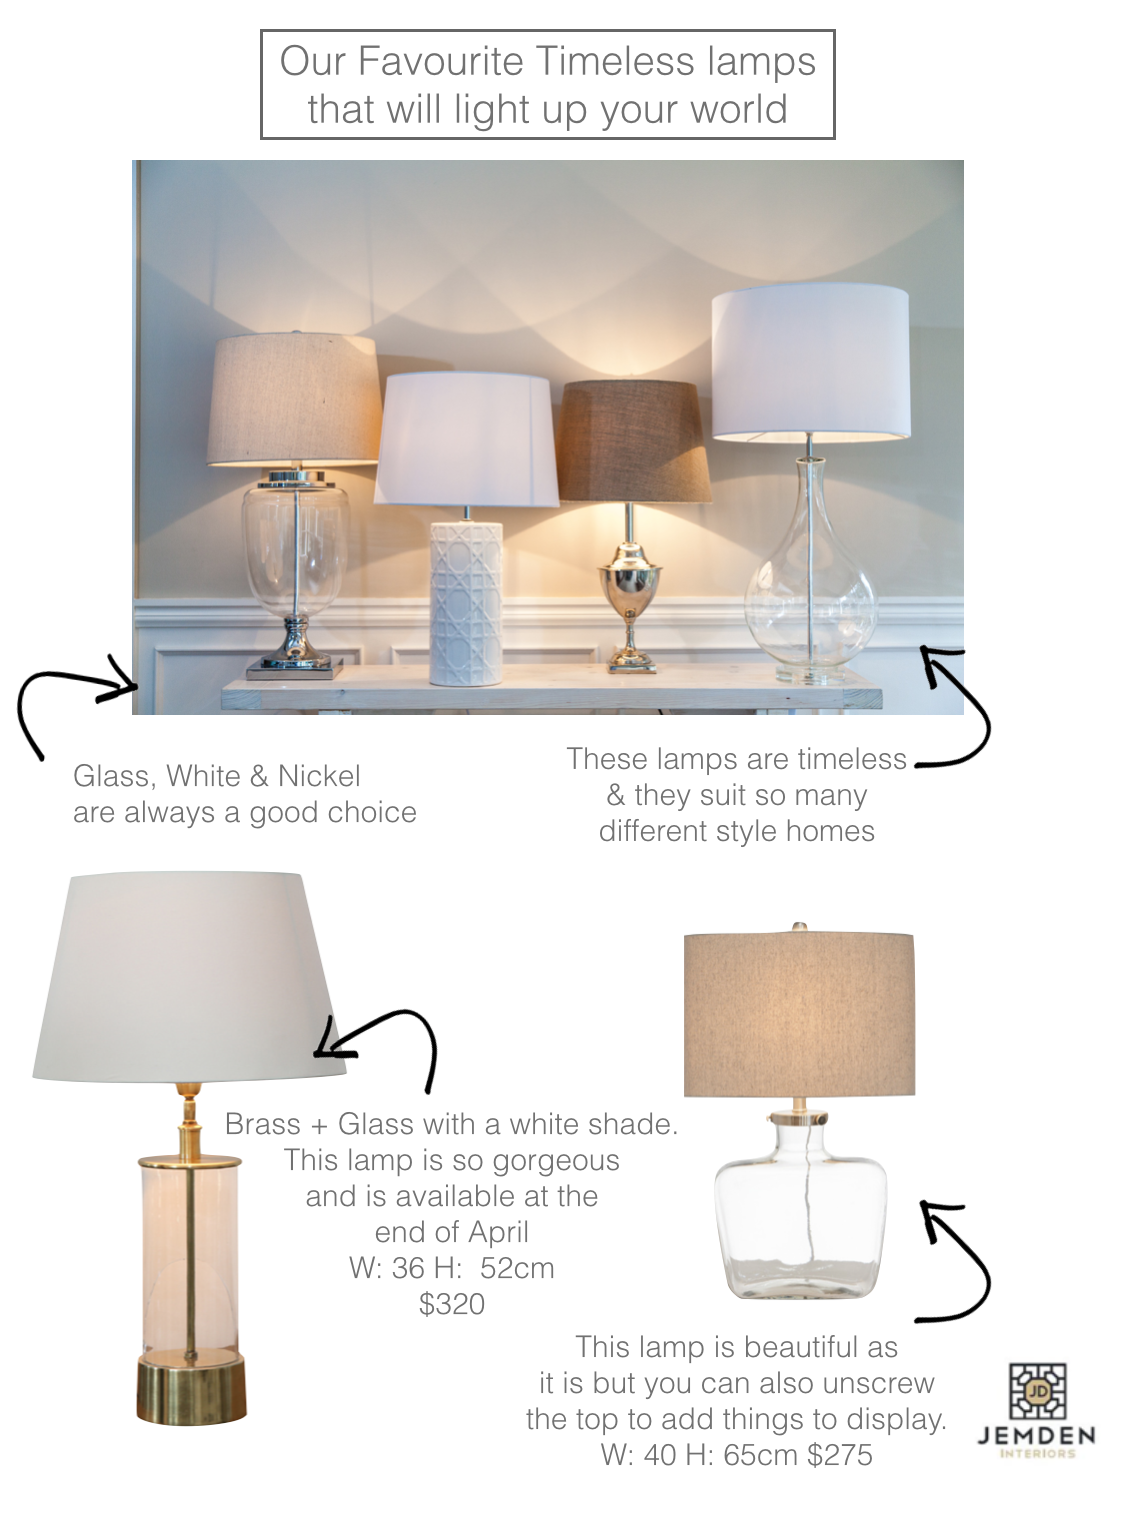 Timeless lamps